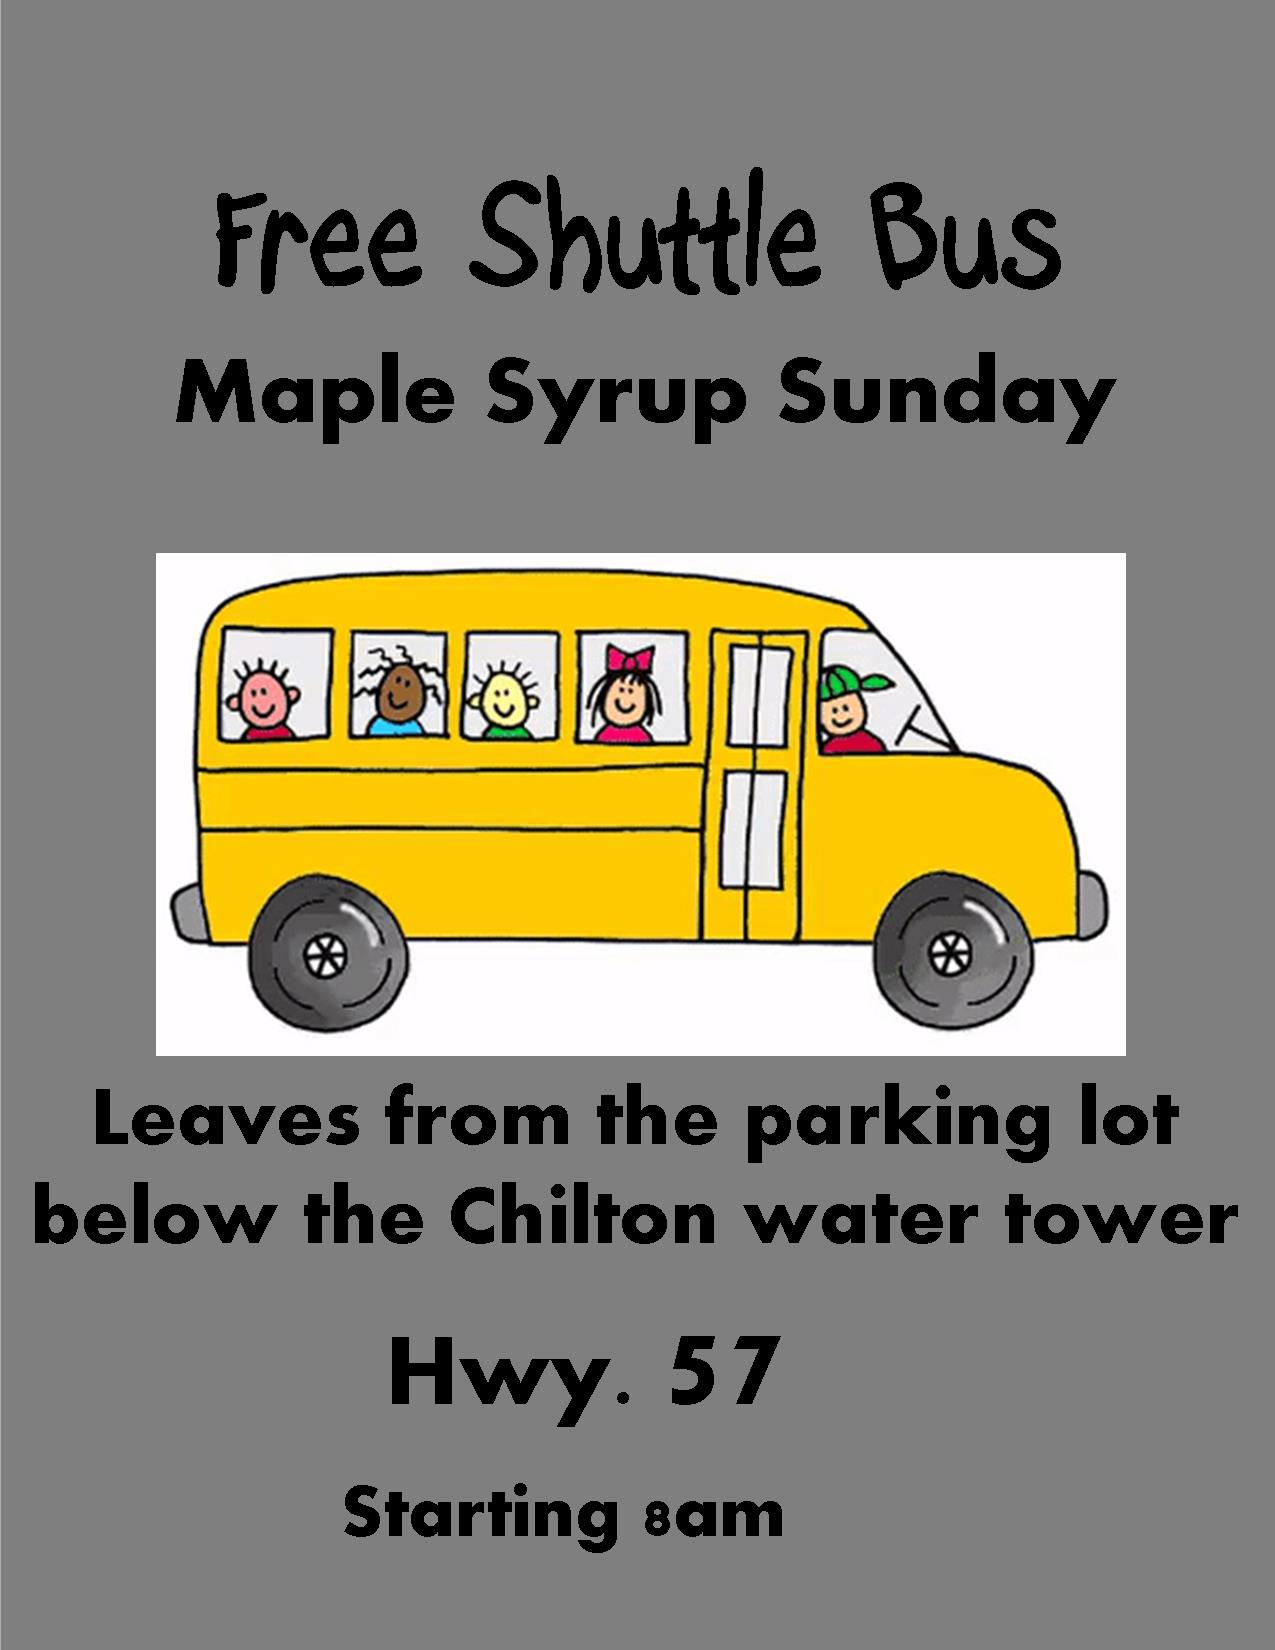 free shuttle poster for Maple Syrup Sunday showing a bus with children on it.